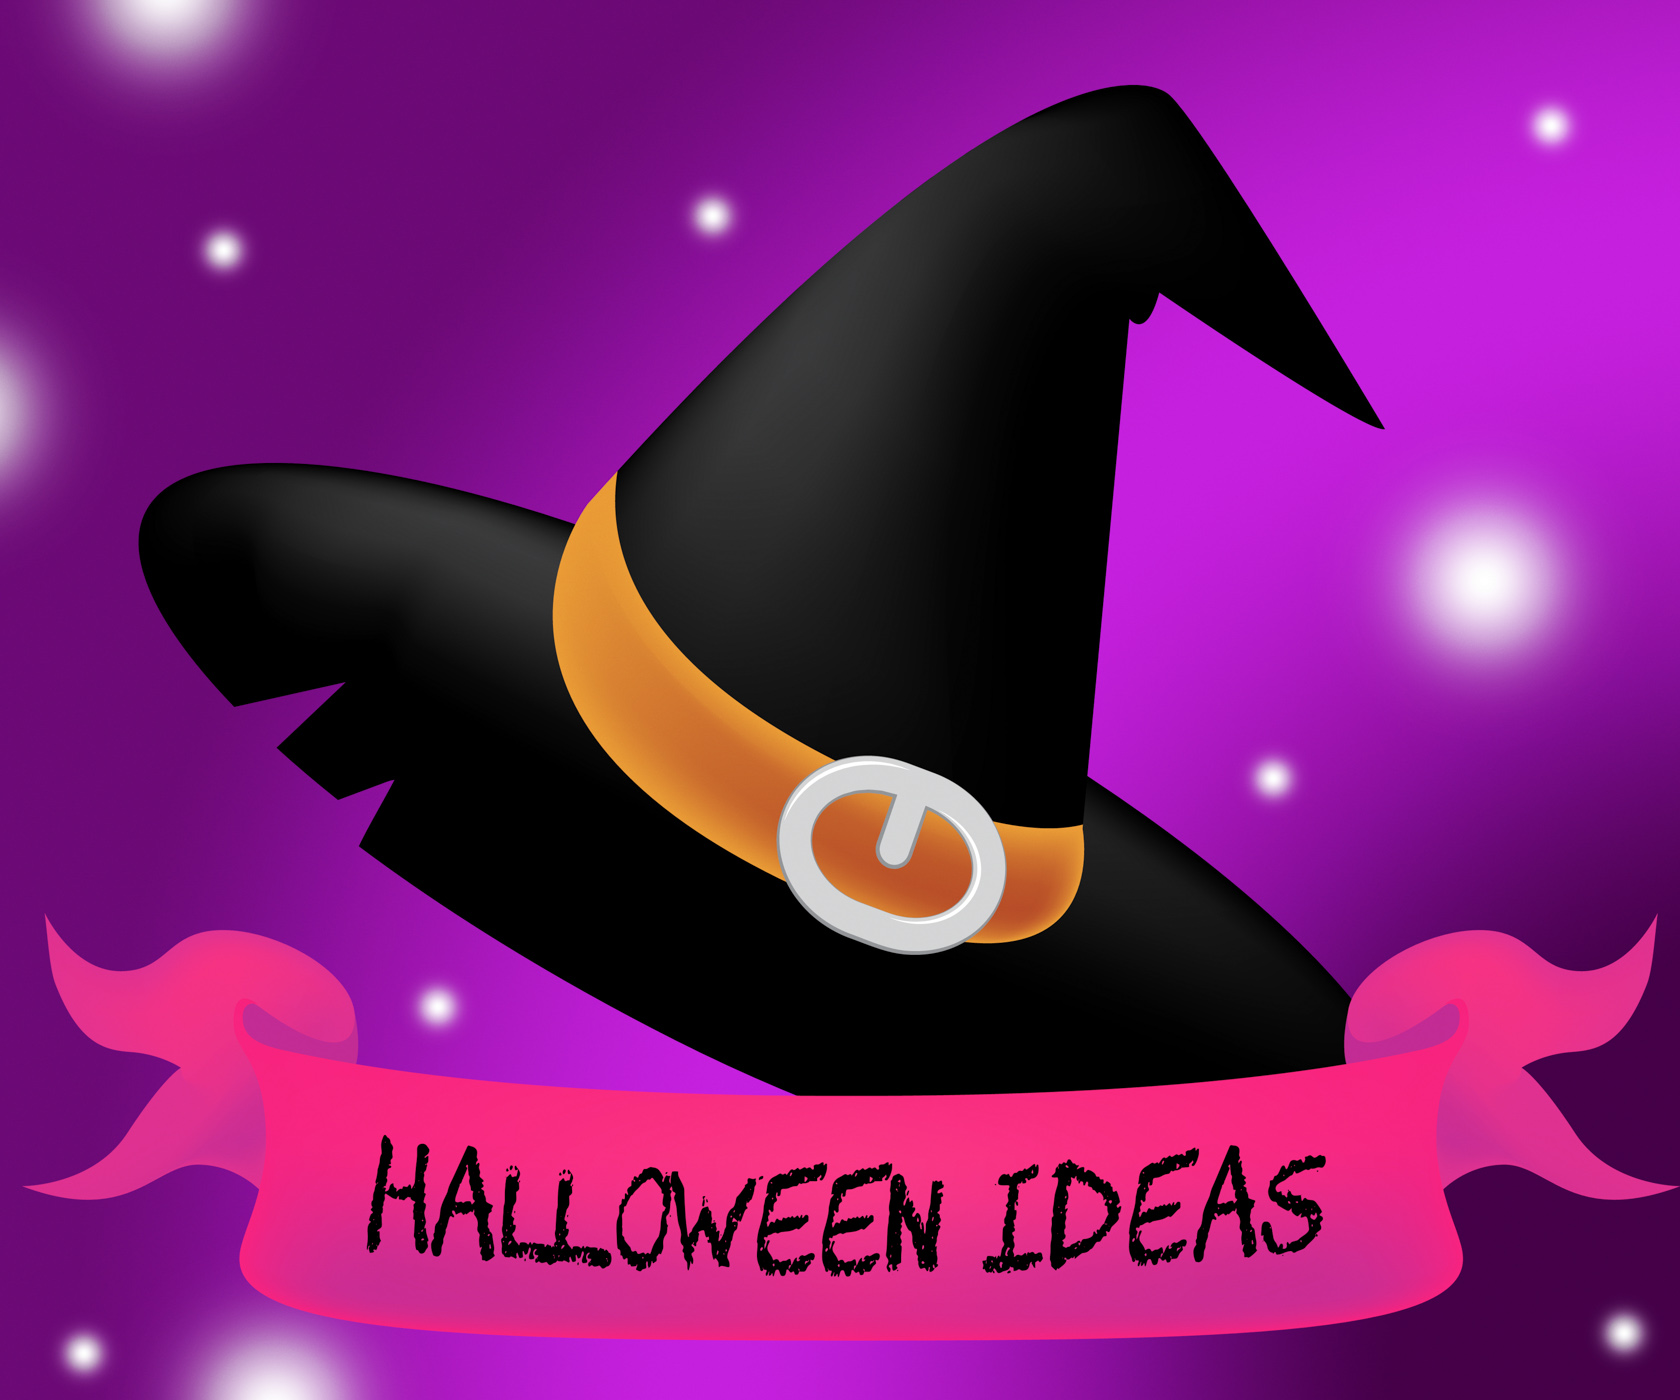 Halloween Ideas Means Trick Or Treat And Autumn, Autumn, Plan, Idea, Ideas, HQ Photo